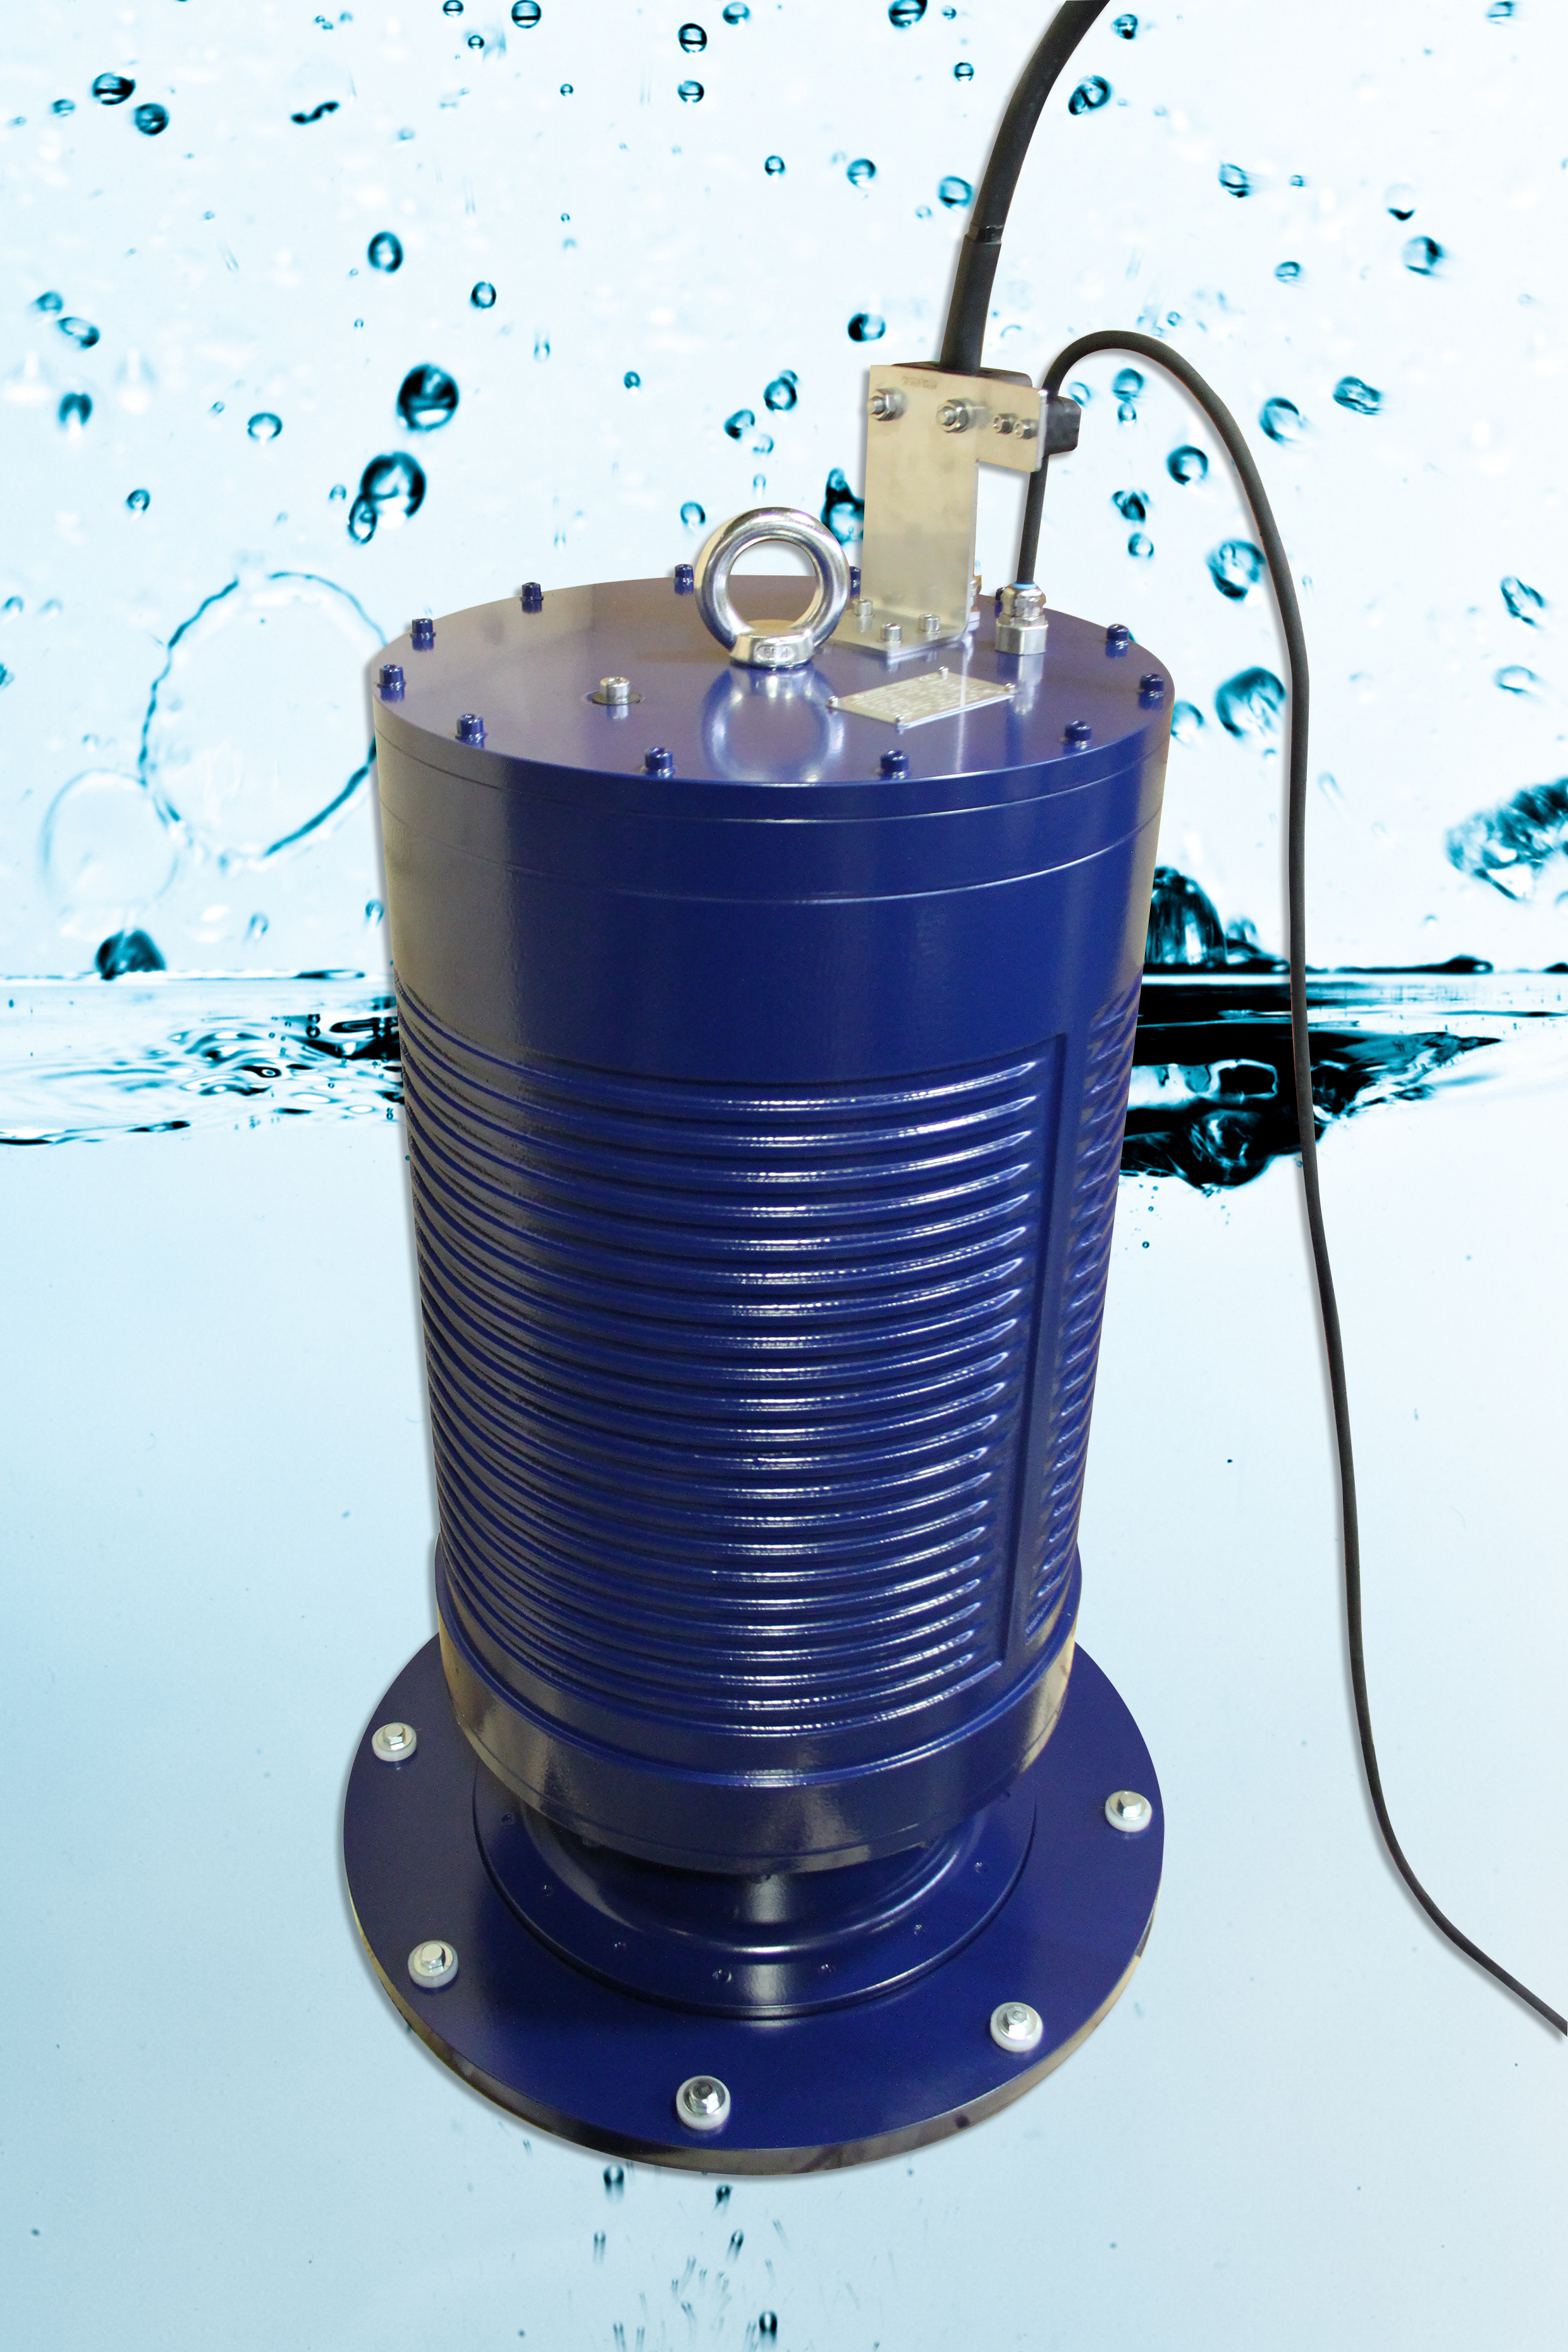 CUSTOMIZED ASYNCHRONOUS MOTORS FOR SUBMERSIBLE PUMPS